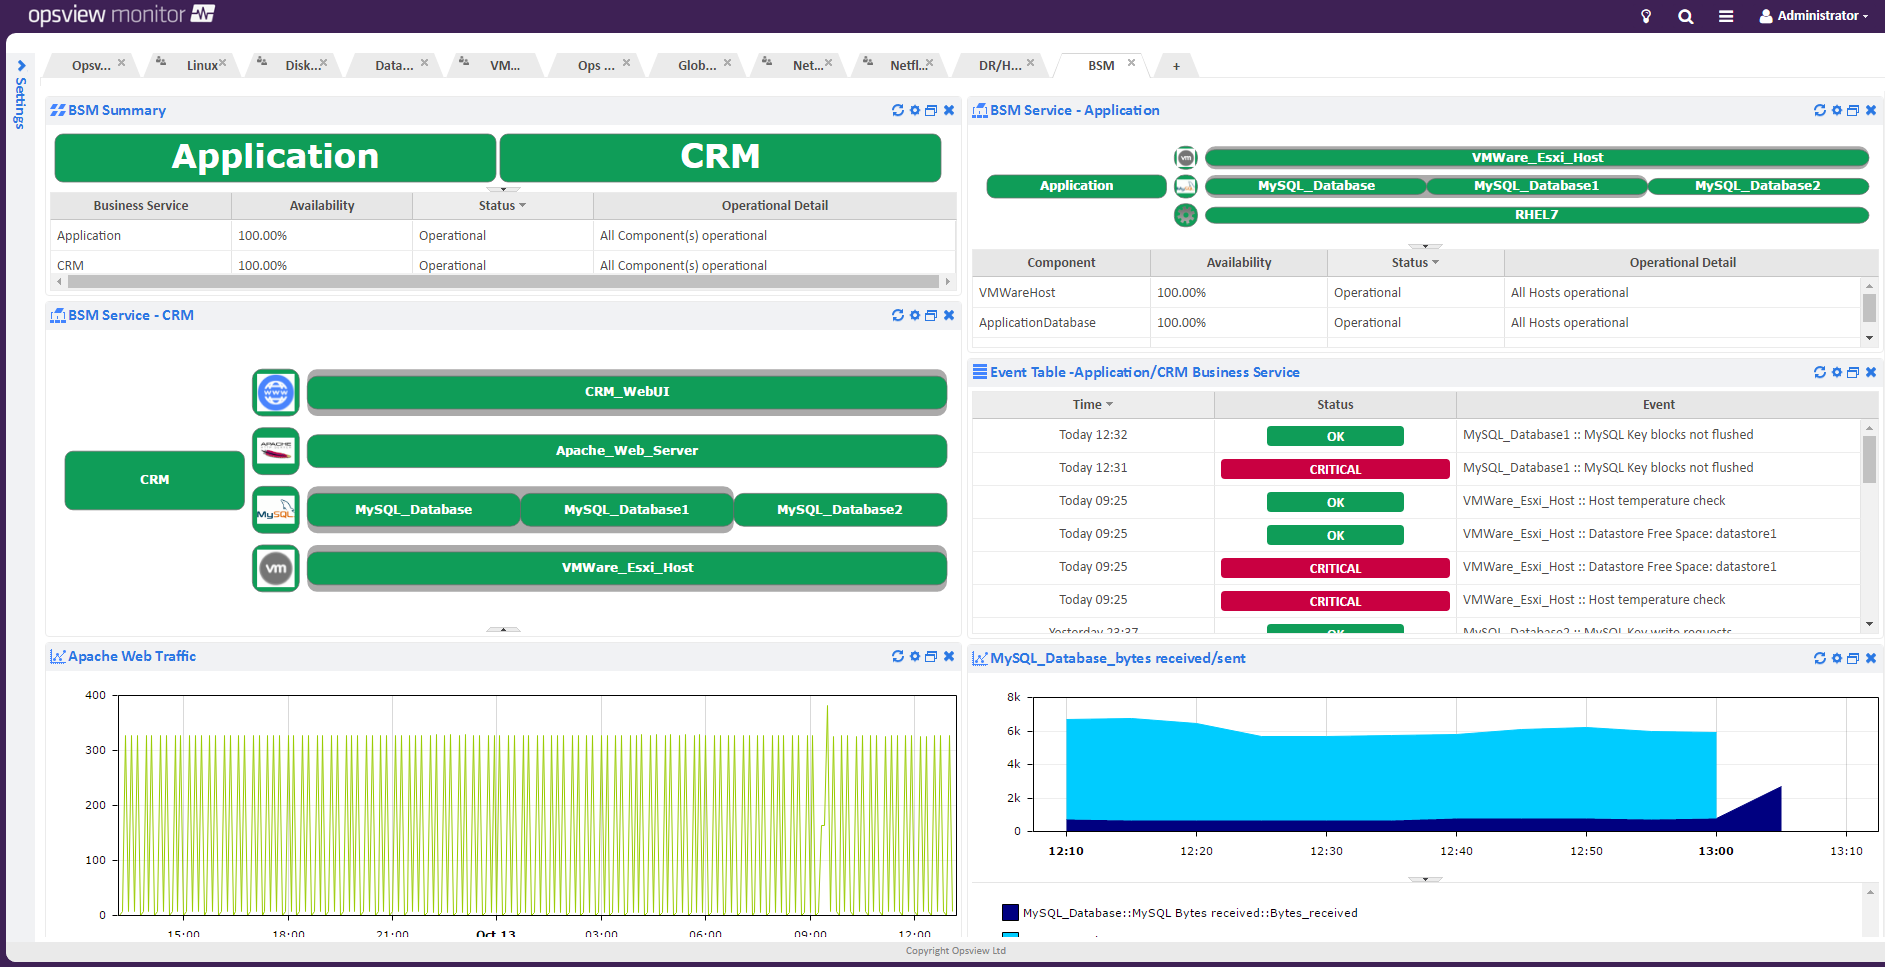 Opsview Enterprise business services monitoring